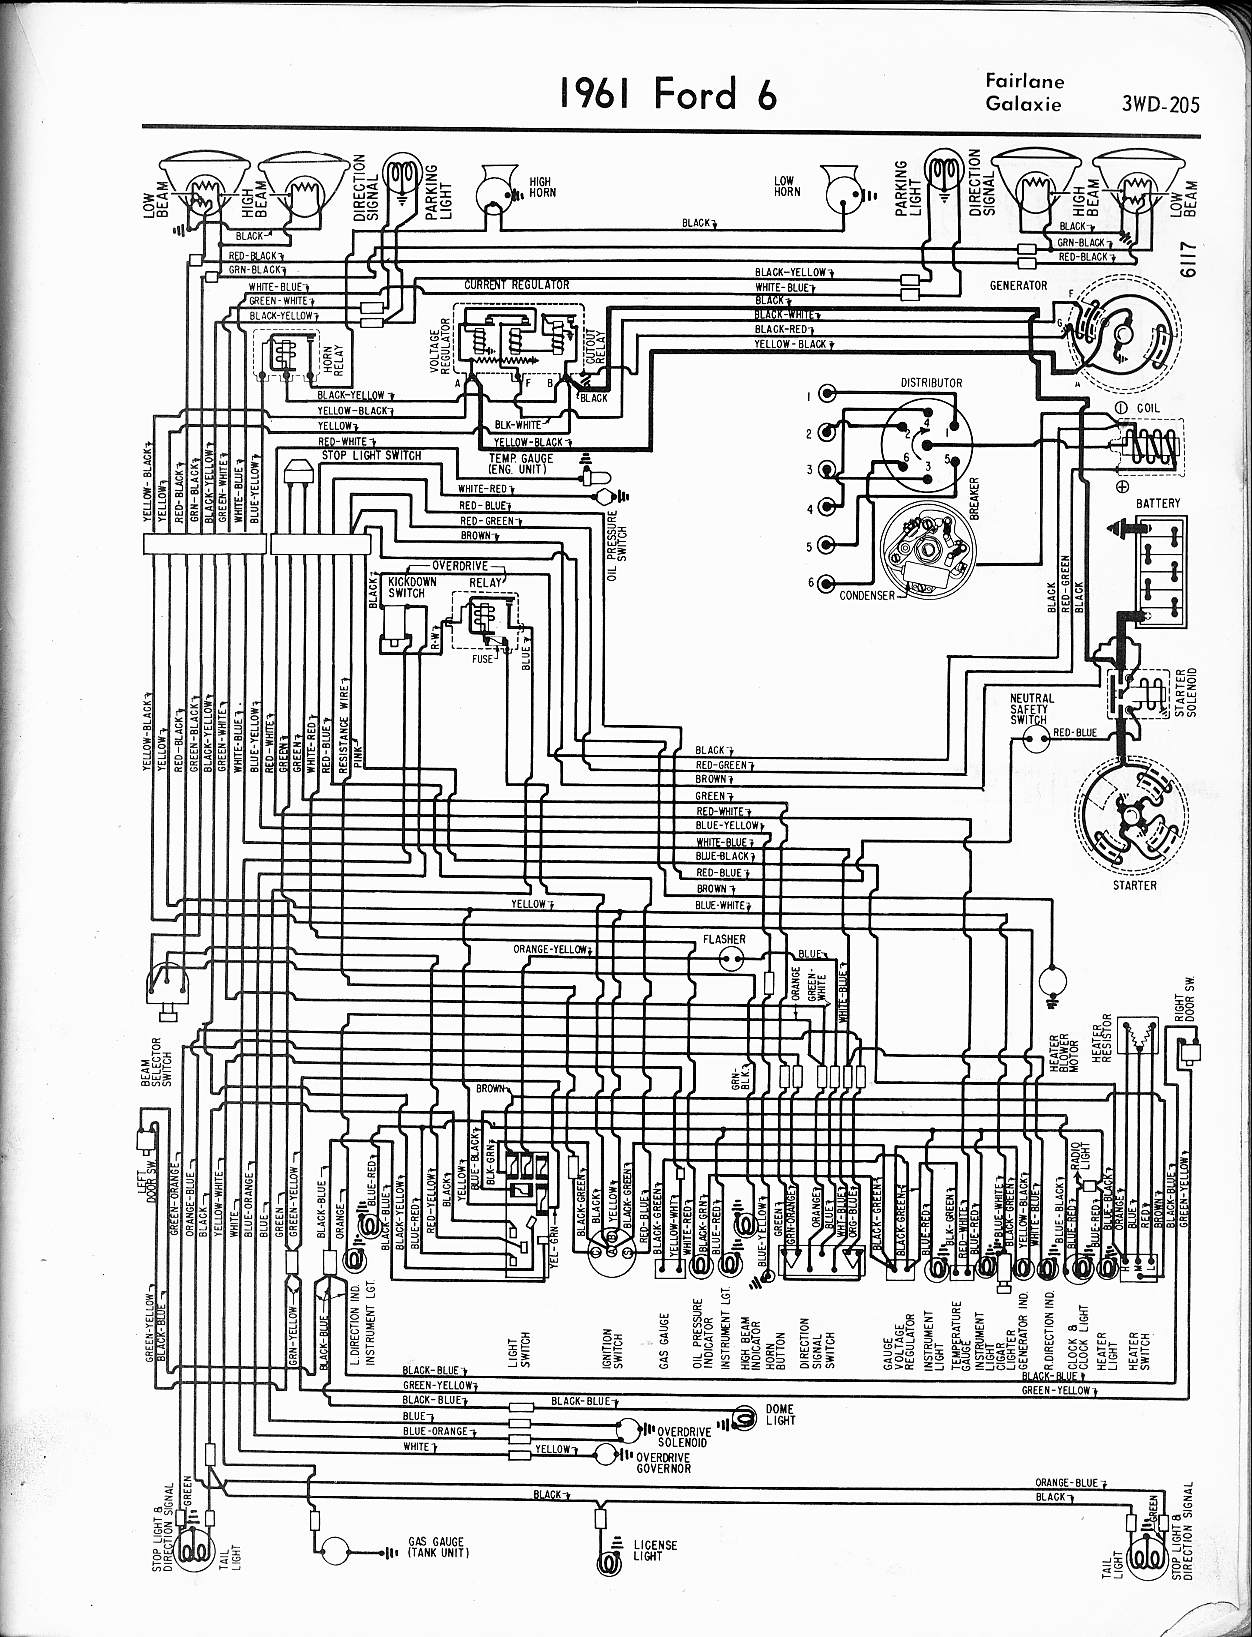 MWire5765 205 wiring diagram model a ford the wiring diagram readingrat net Ford E 350 Wiring Diagrams at fashall.co